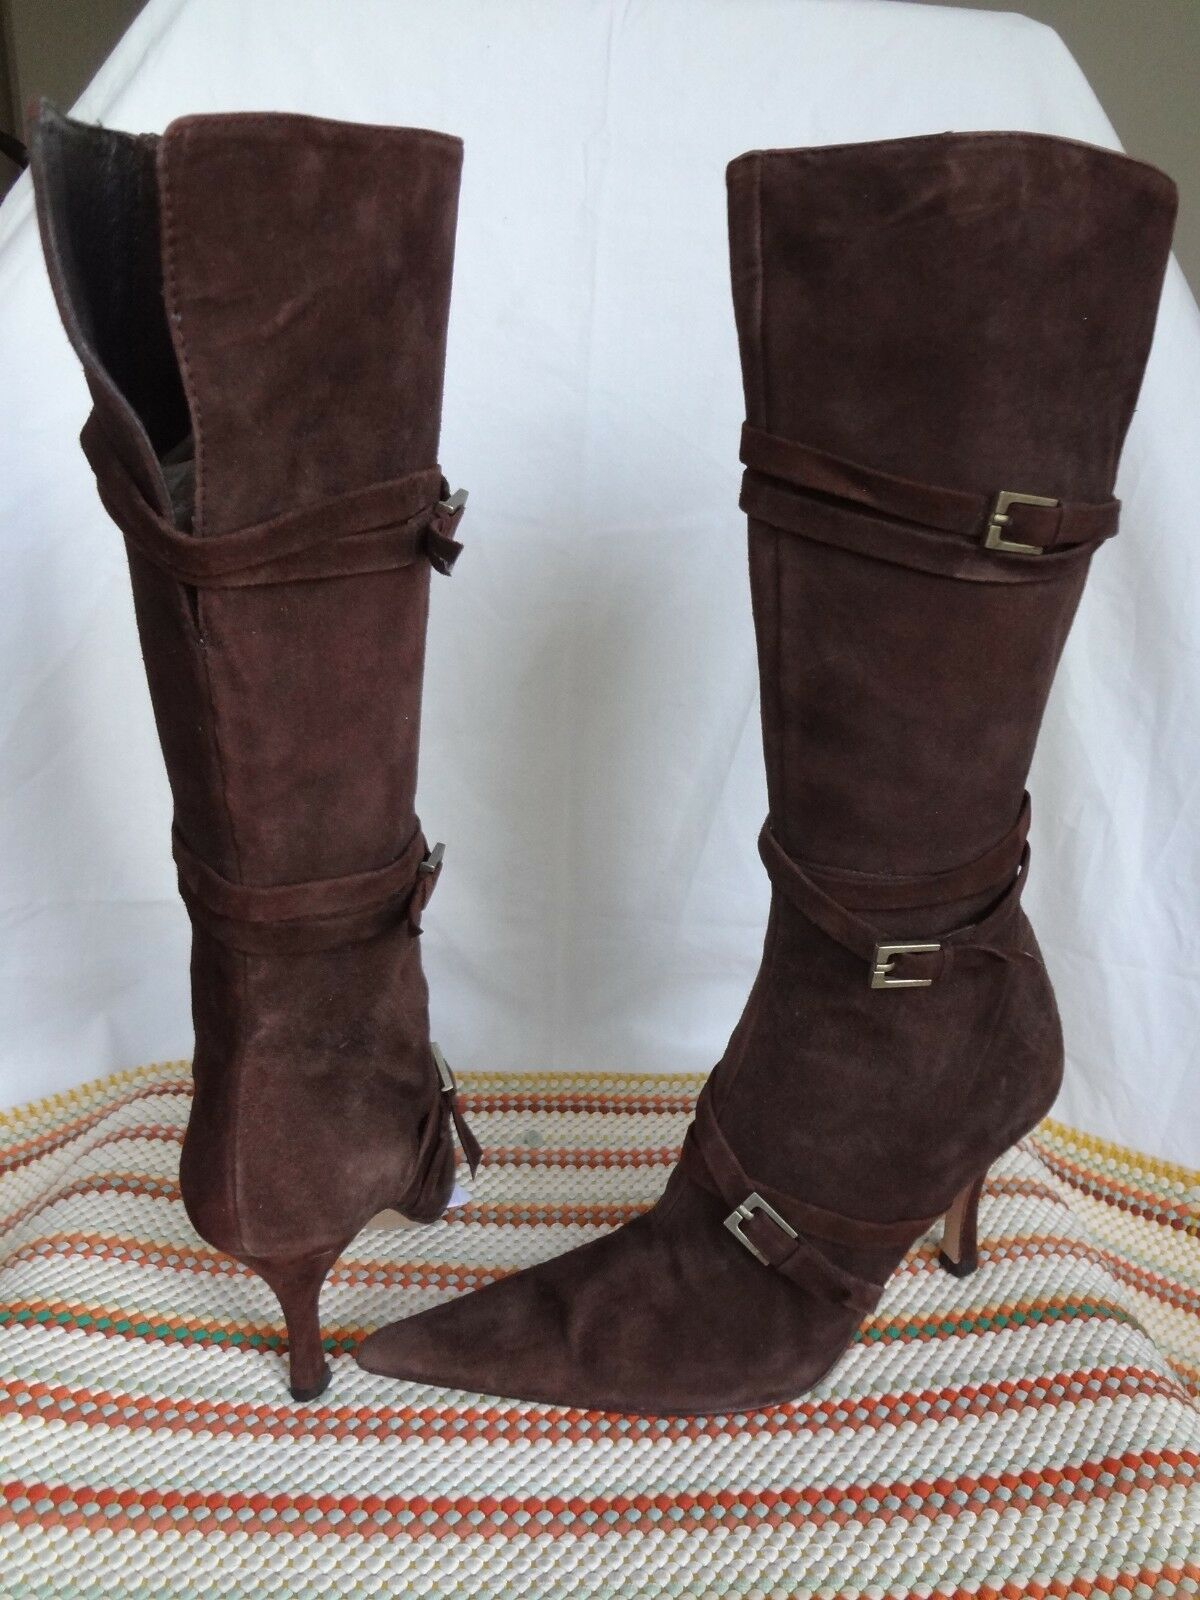 ALDO Damenschuhe ANKLE SUEDE Stiefel BUCKLE BROWN  SIZE 37/ US 6.5-7  BROWN EUC 30cd17